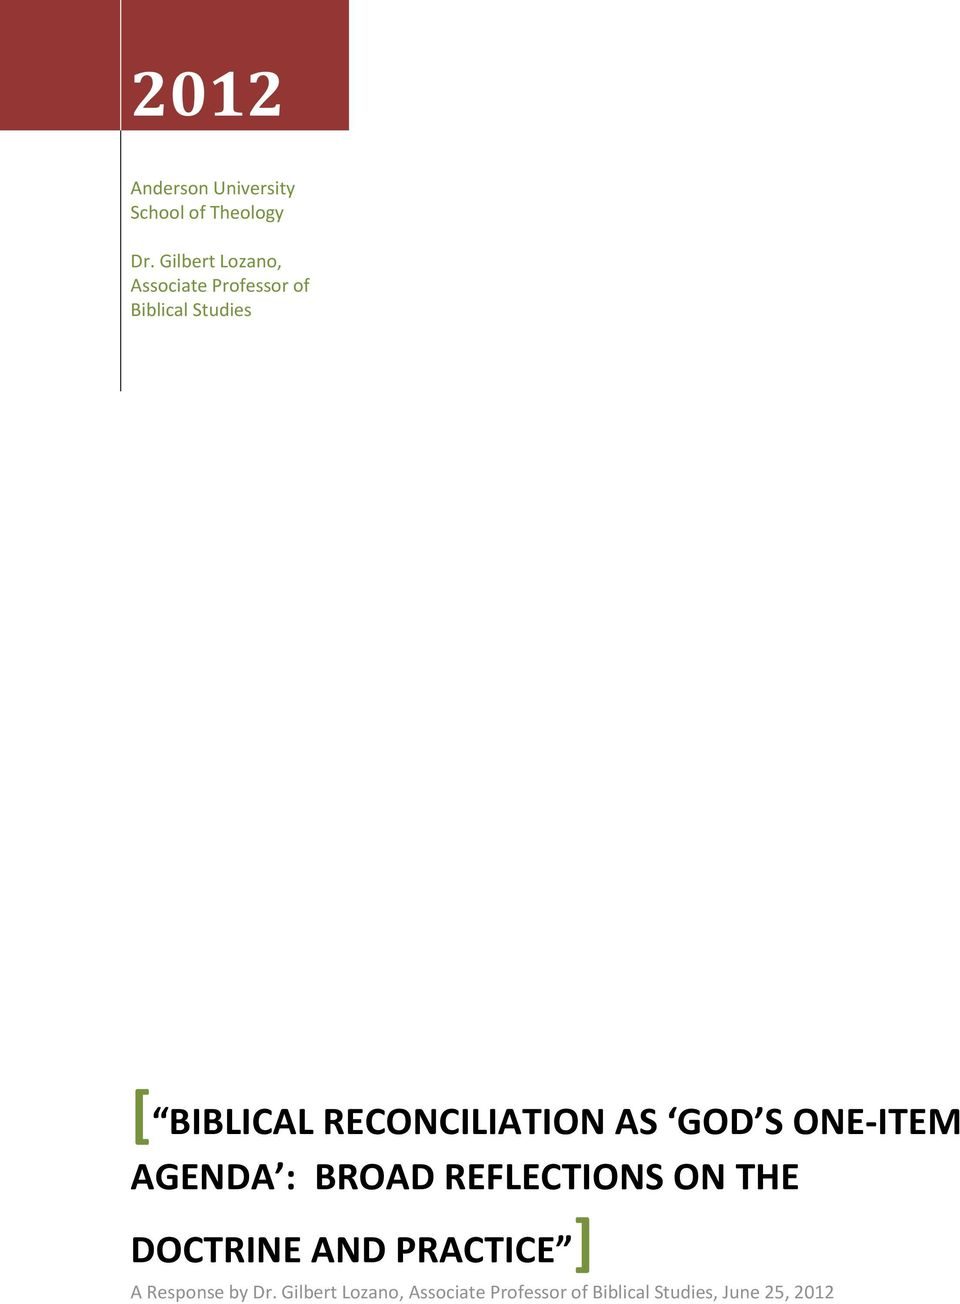 RECONCILIATION AS GOD S ONE-ITEM AGENDA : BROAD REFLECTIONS ON THE